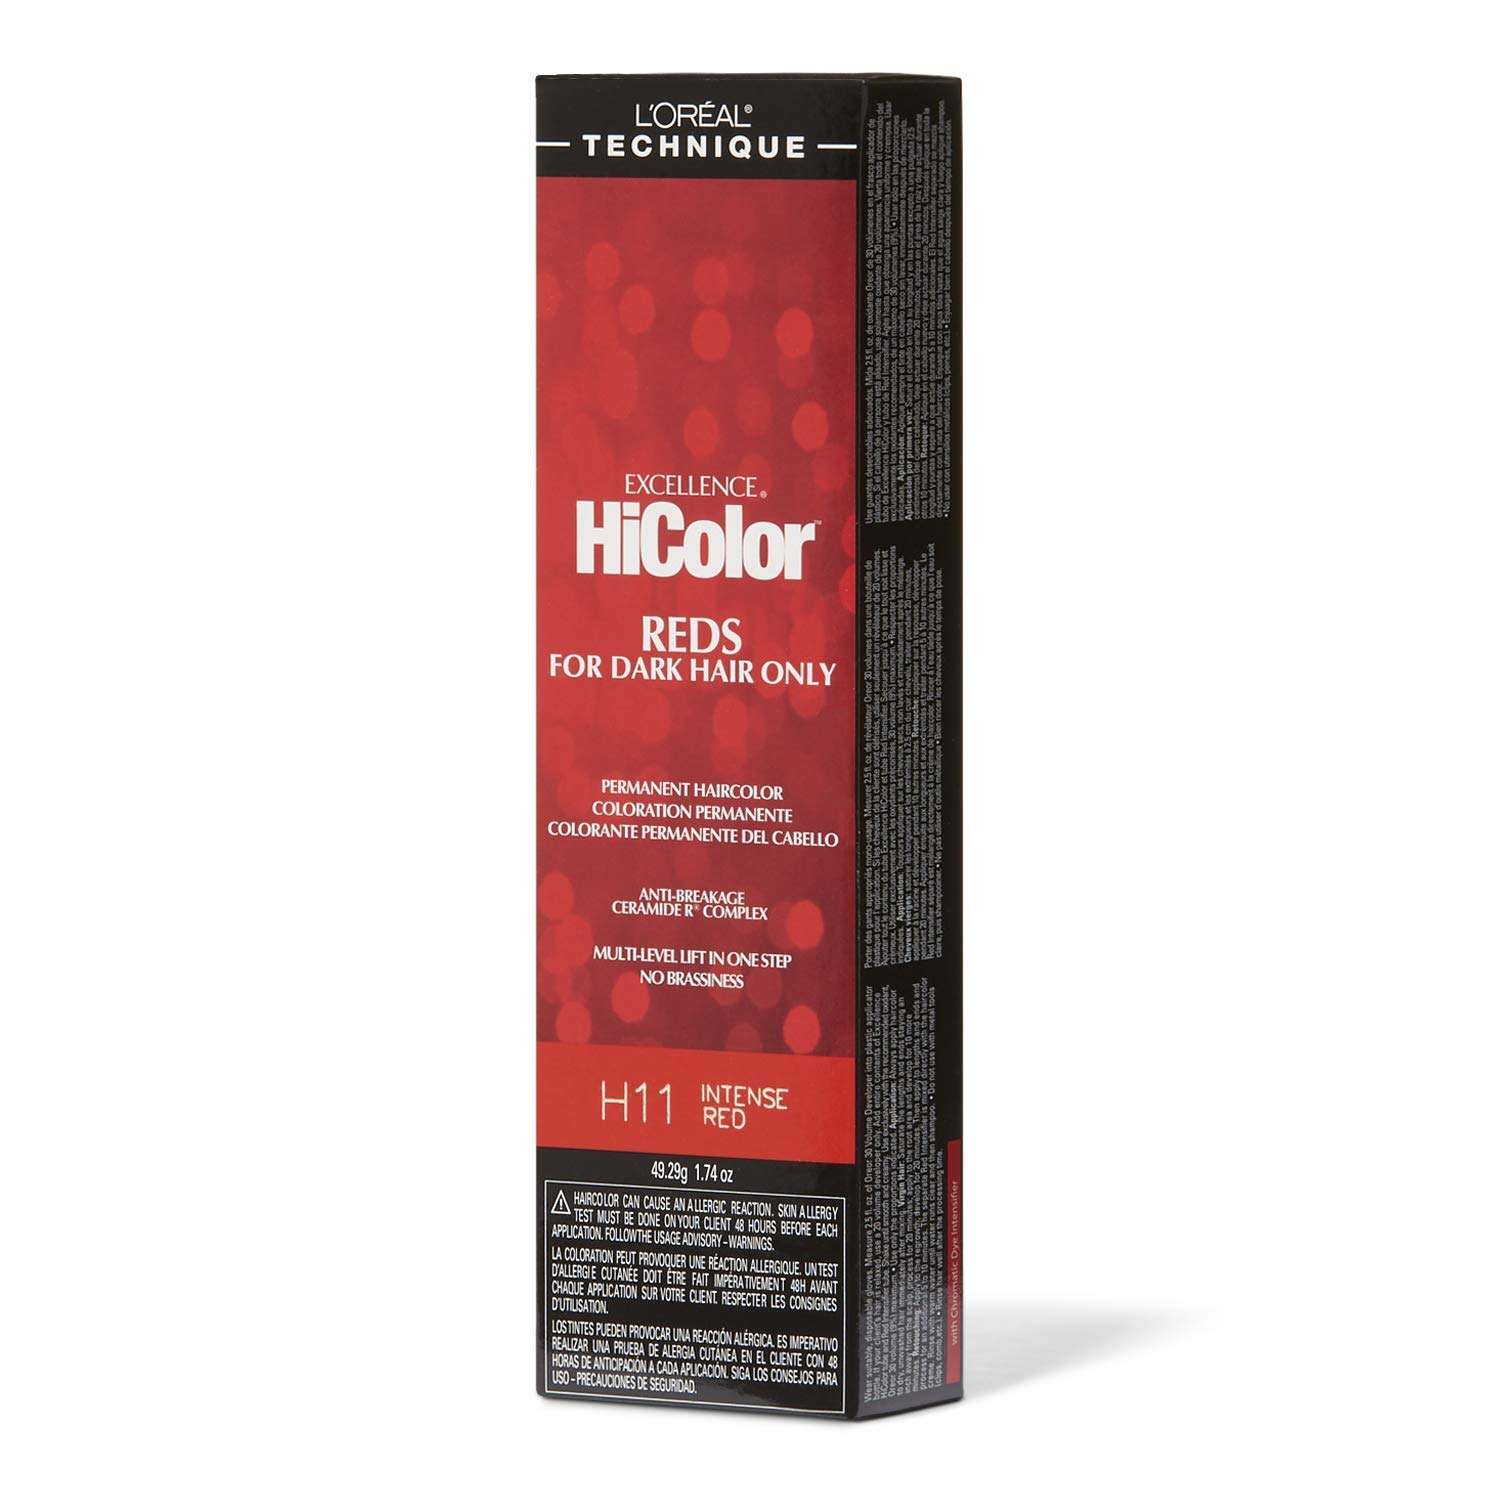 Loreal Excellence Hicolor H11 Tube Intense Red 1.74 Ounce (51ml)